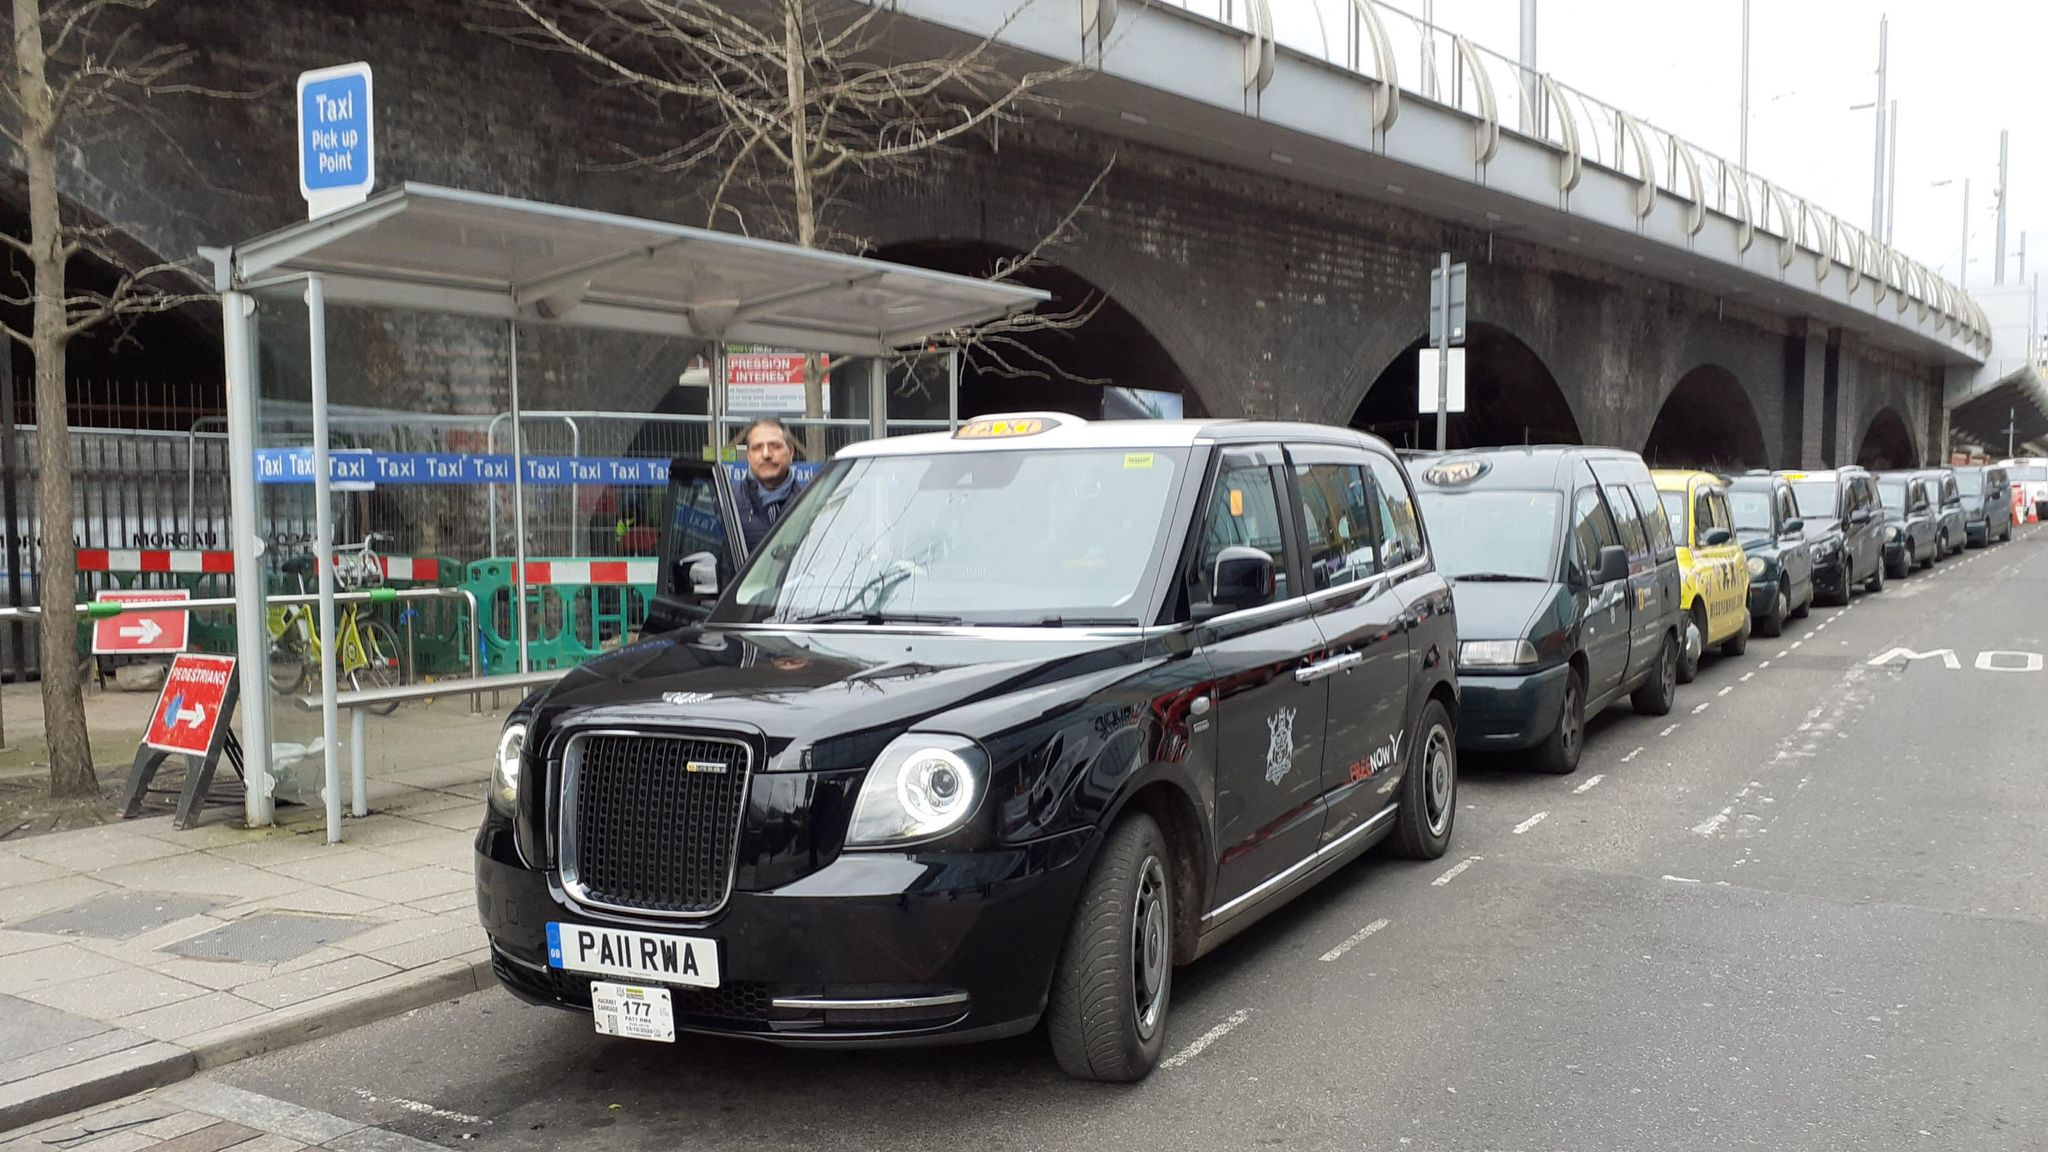 Nottingham to trial wireless charging for electric taxis in UK first